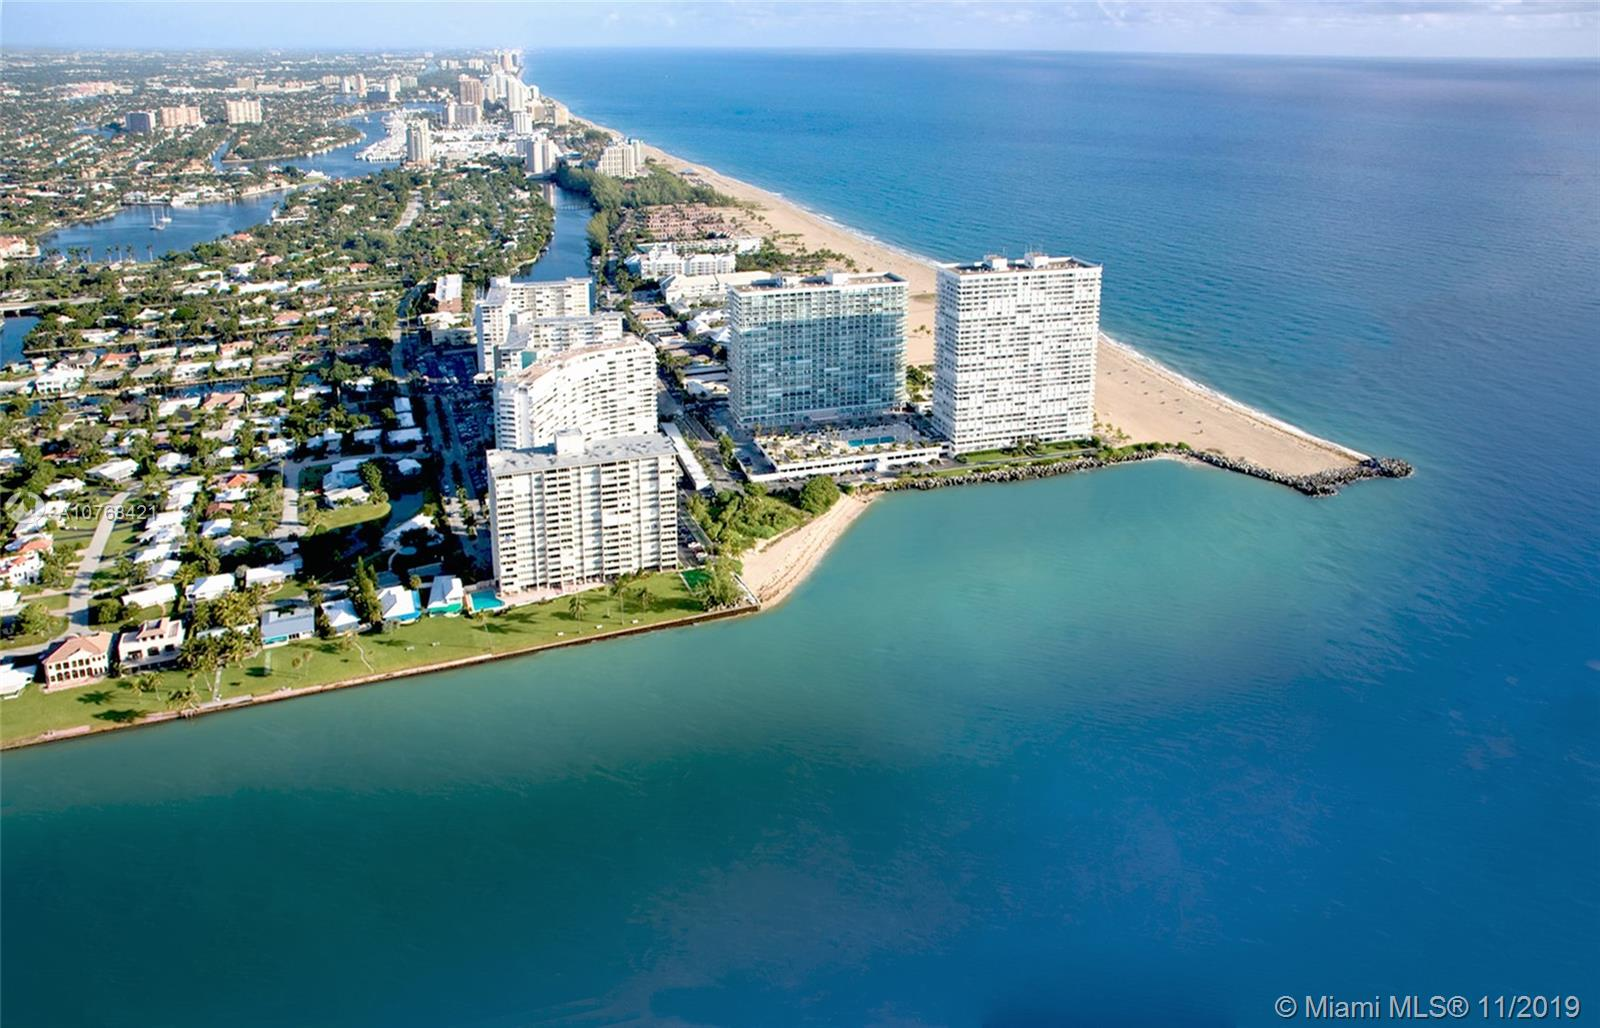 The only Penthouse available for sale at prestigious Point of Americas II.  Enjoy direct ocean, cruise ship and coastal views to Miami from this classically elegant residence with custom details and 9-foot ceilings only found on the Penthouse level.  Highly desirable floor plan offers floor to ceiling glass, oversized rooms, multiple walk in closets, foyer entry and more.  Brand new five star resort amenities include elegant lobby & club rooms, restaurant, guest hotel rooms, multiple fitness rooms, sauna, massage room, game room and more.  Enjoy two resort pools and also the widest private beach in Fort Lauderdale with beach service.  Walking distance to restaurants and beach clubs and just minutes to Las Olas/downtown, airport, cruise port, Virgin Train and all major roads.